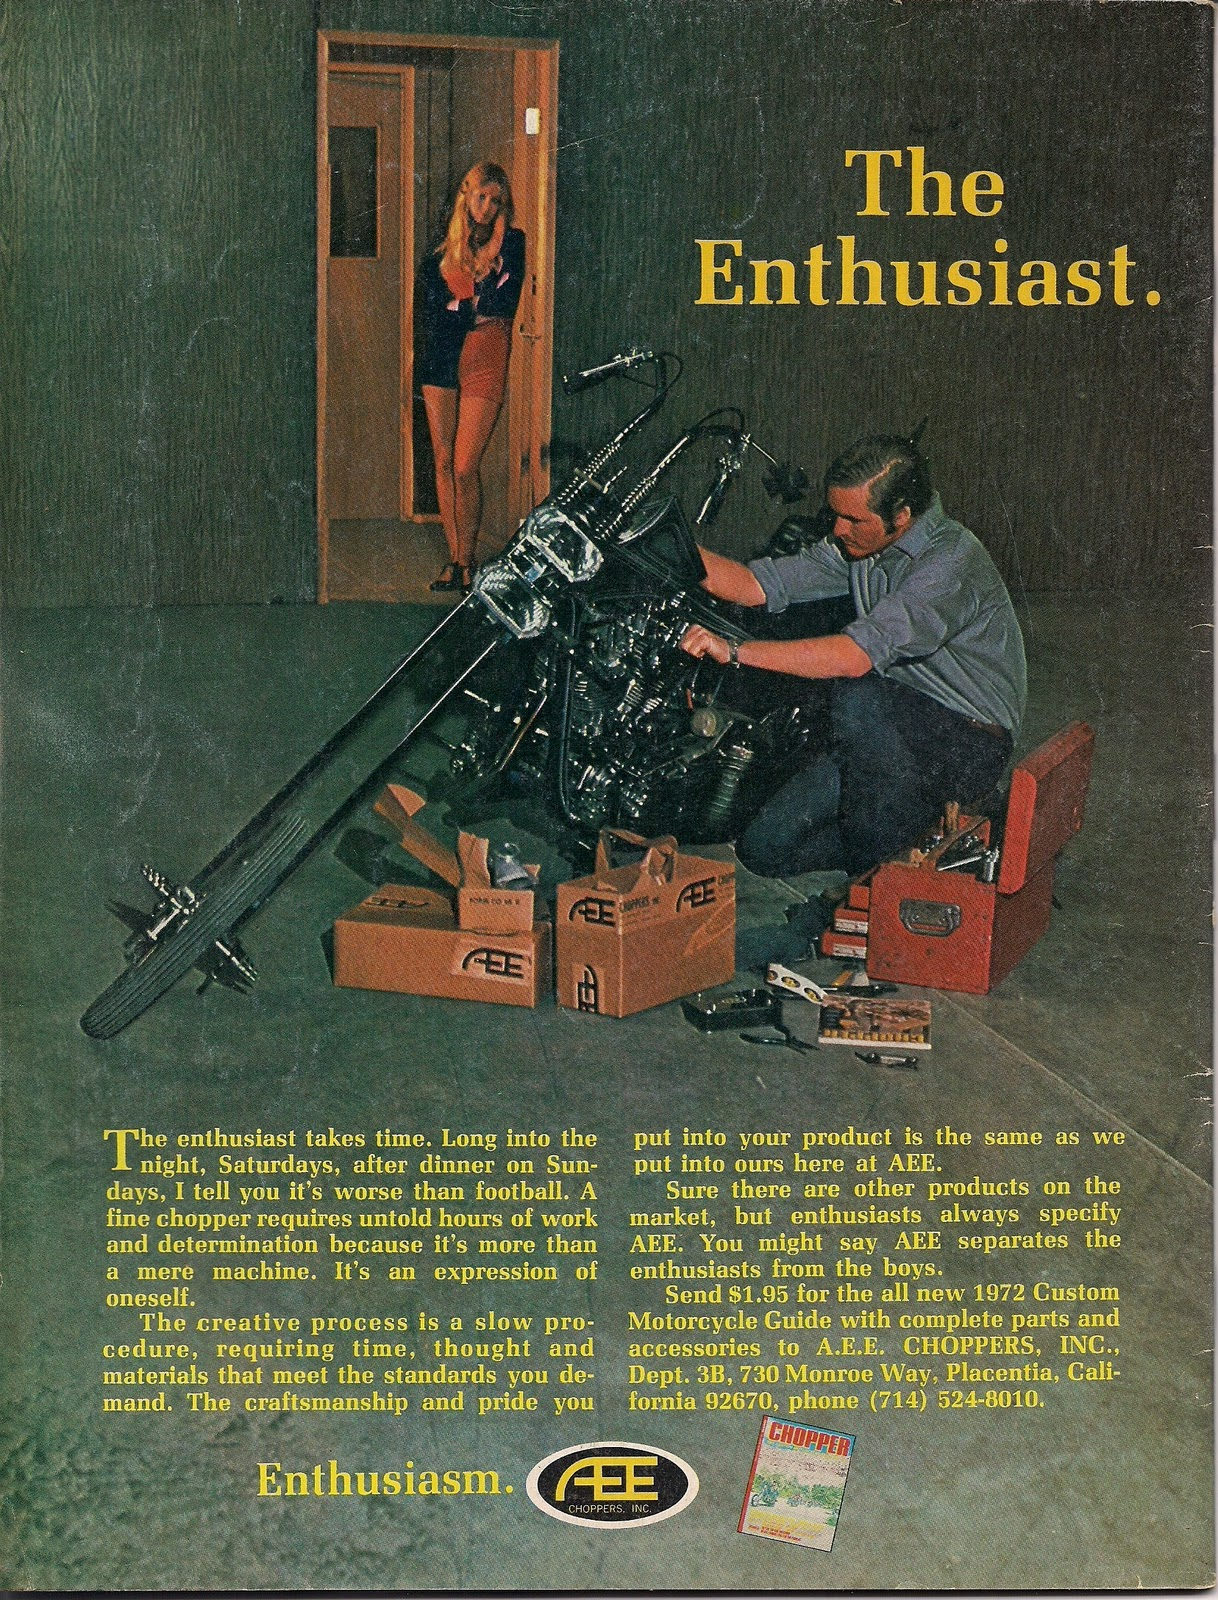 1969 A.E.E. Choppers Motorcycle Chopper Parts Accessories Ad